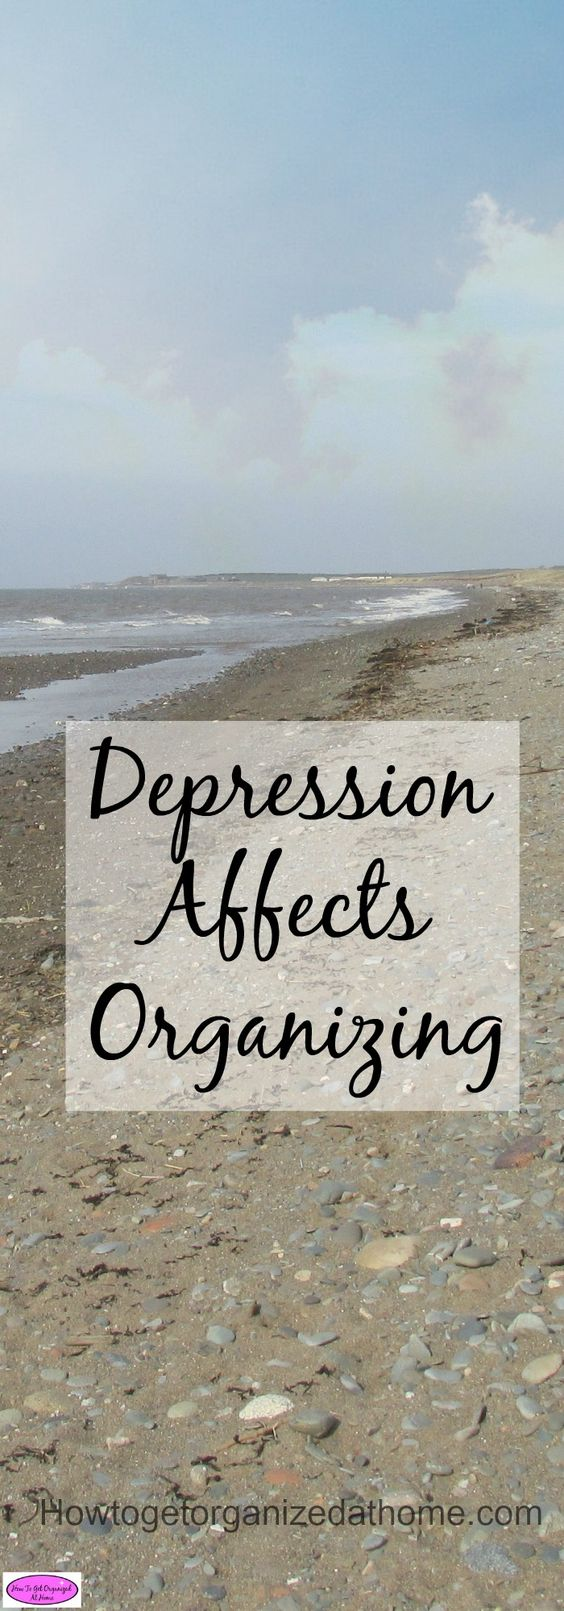 Why your depression affects organizing in your home. It is part of the complexity of the illness. It is going to take time to heal. FREE printable included!: